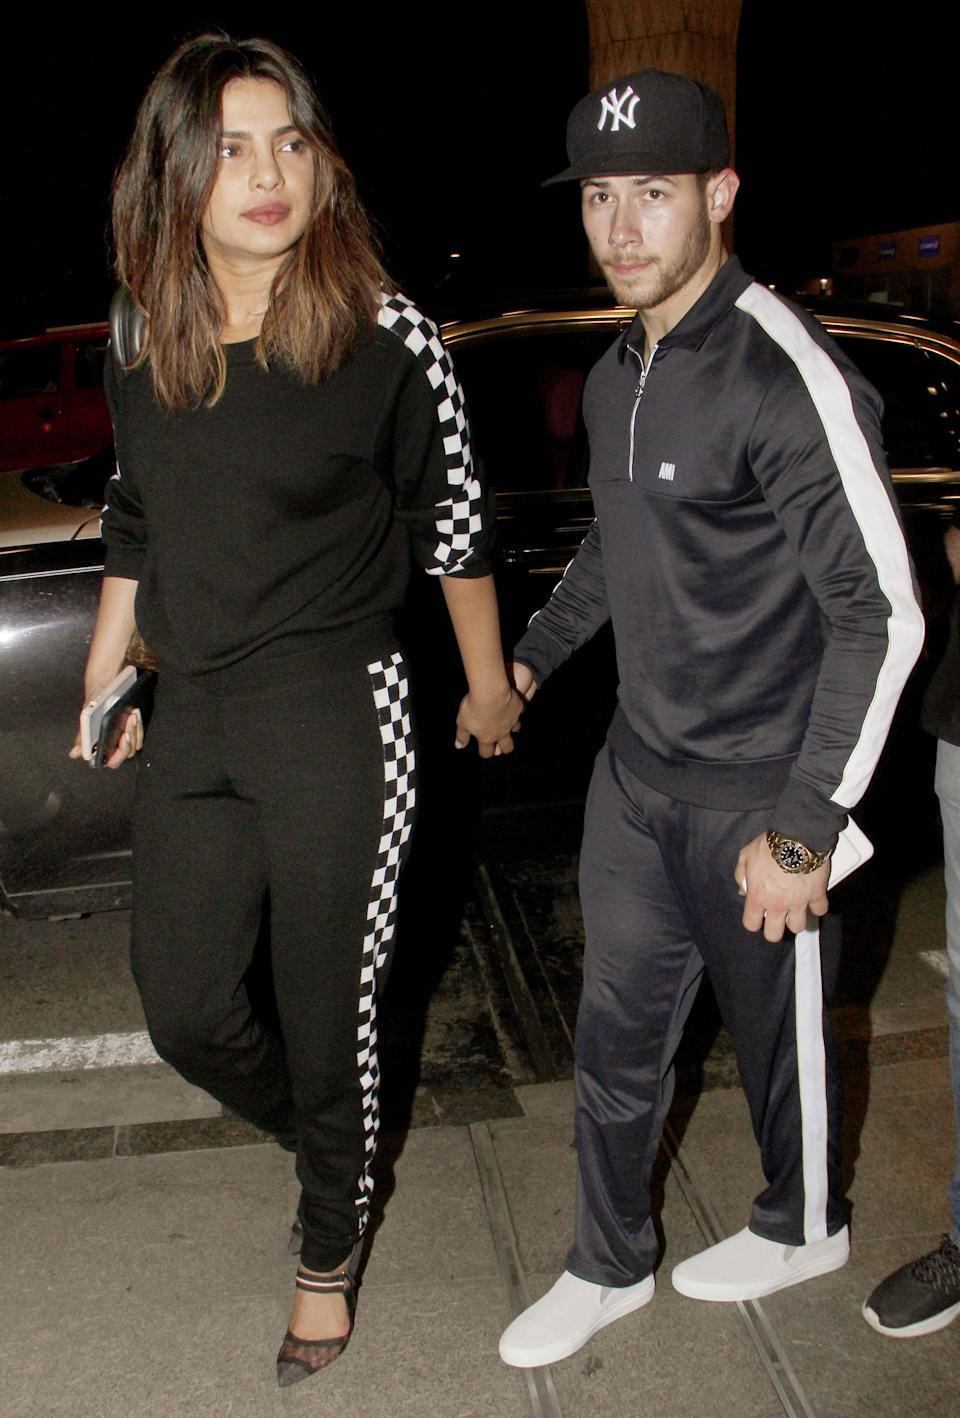 <p>Priyanka Chopra's rumoured link up with singer Nick Jonas is now the talk of the town. The two have been inseparable in the last one month, and have been providing plenty of fodder to the gossip mill with their frequent dates and PDA on Instagram. </p>